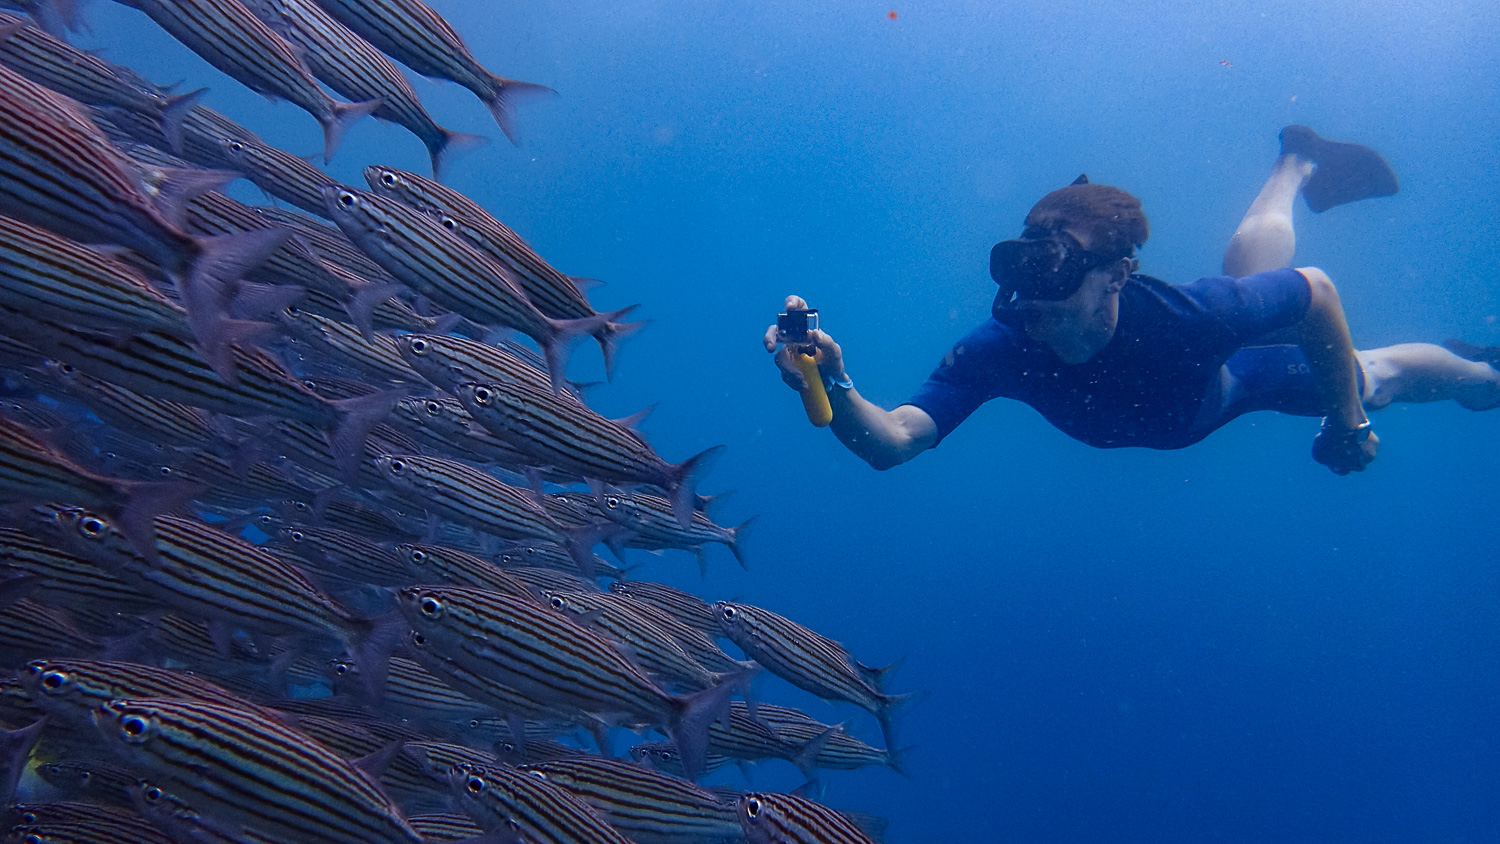 Jake checking out a school of fish. (Photo courtesy of Victor)